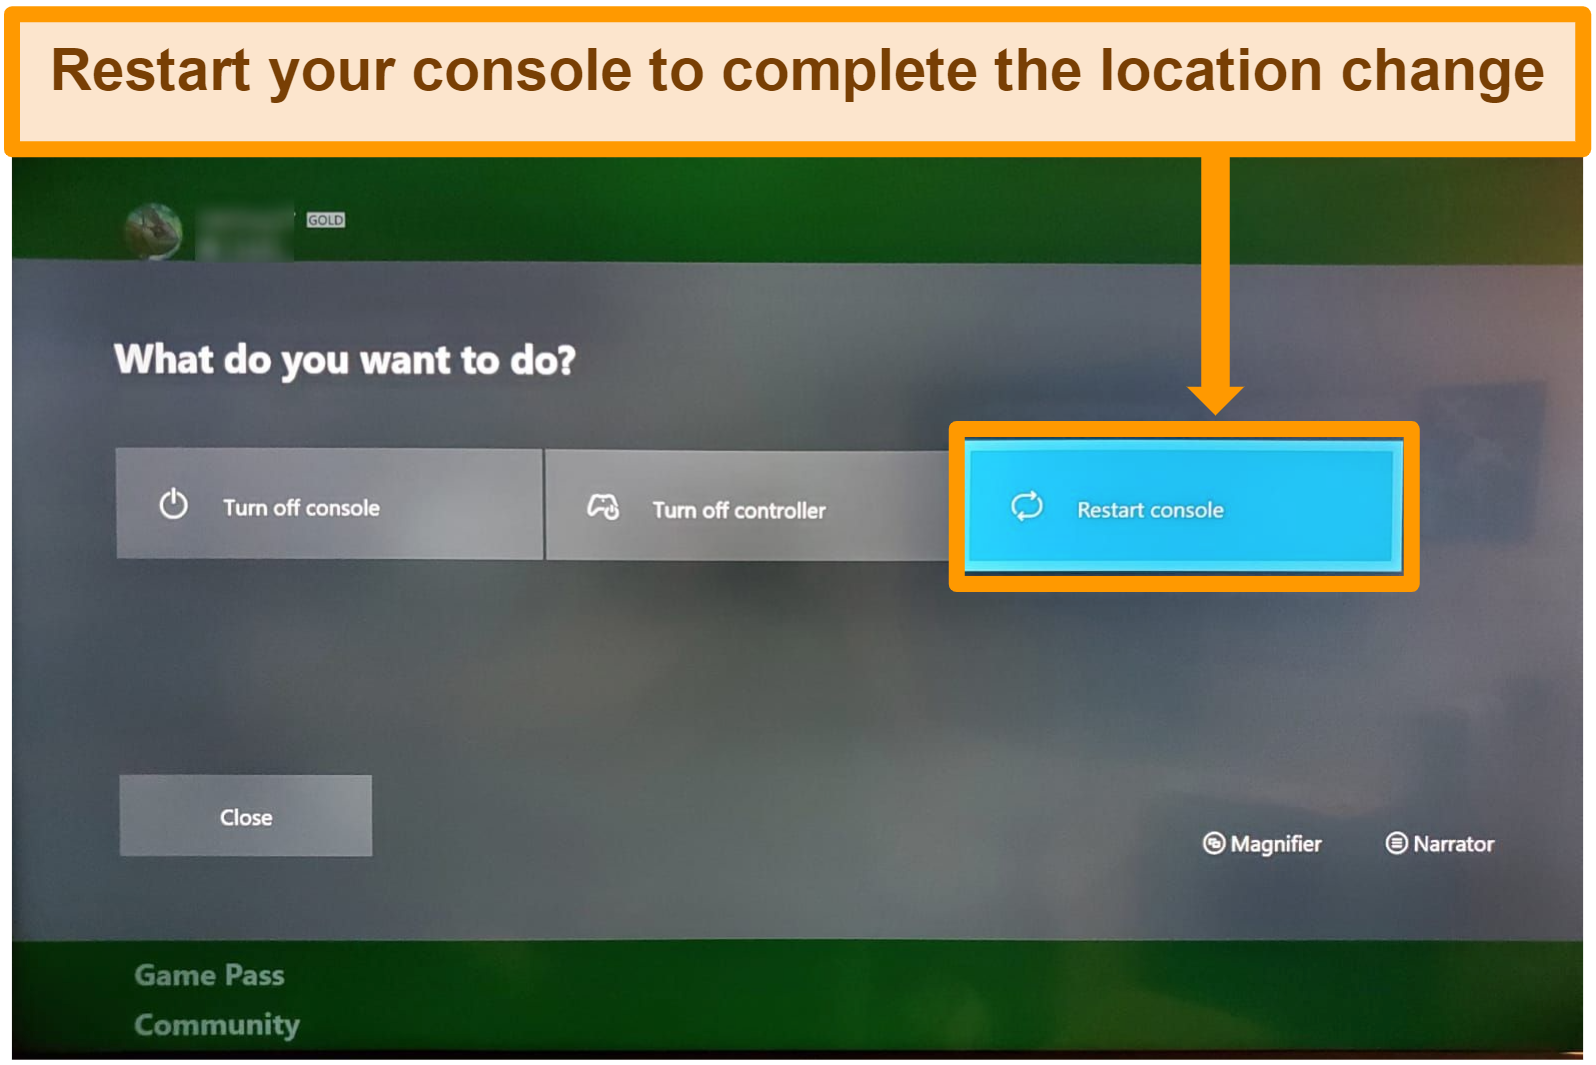 Screenshot of completing xbox location change by restarting